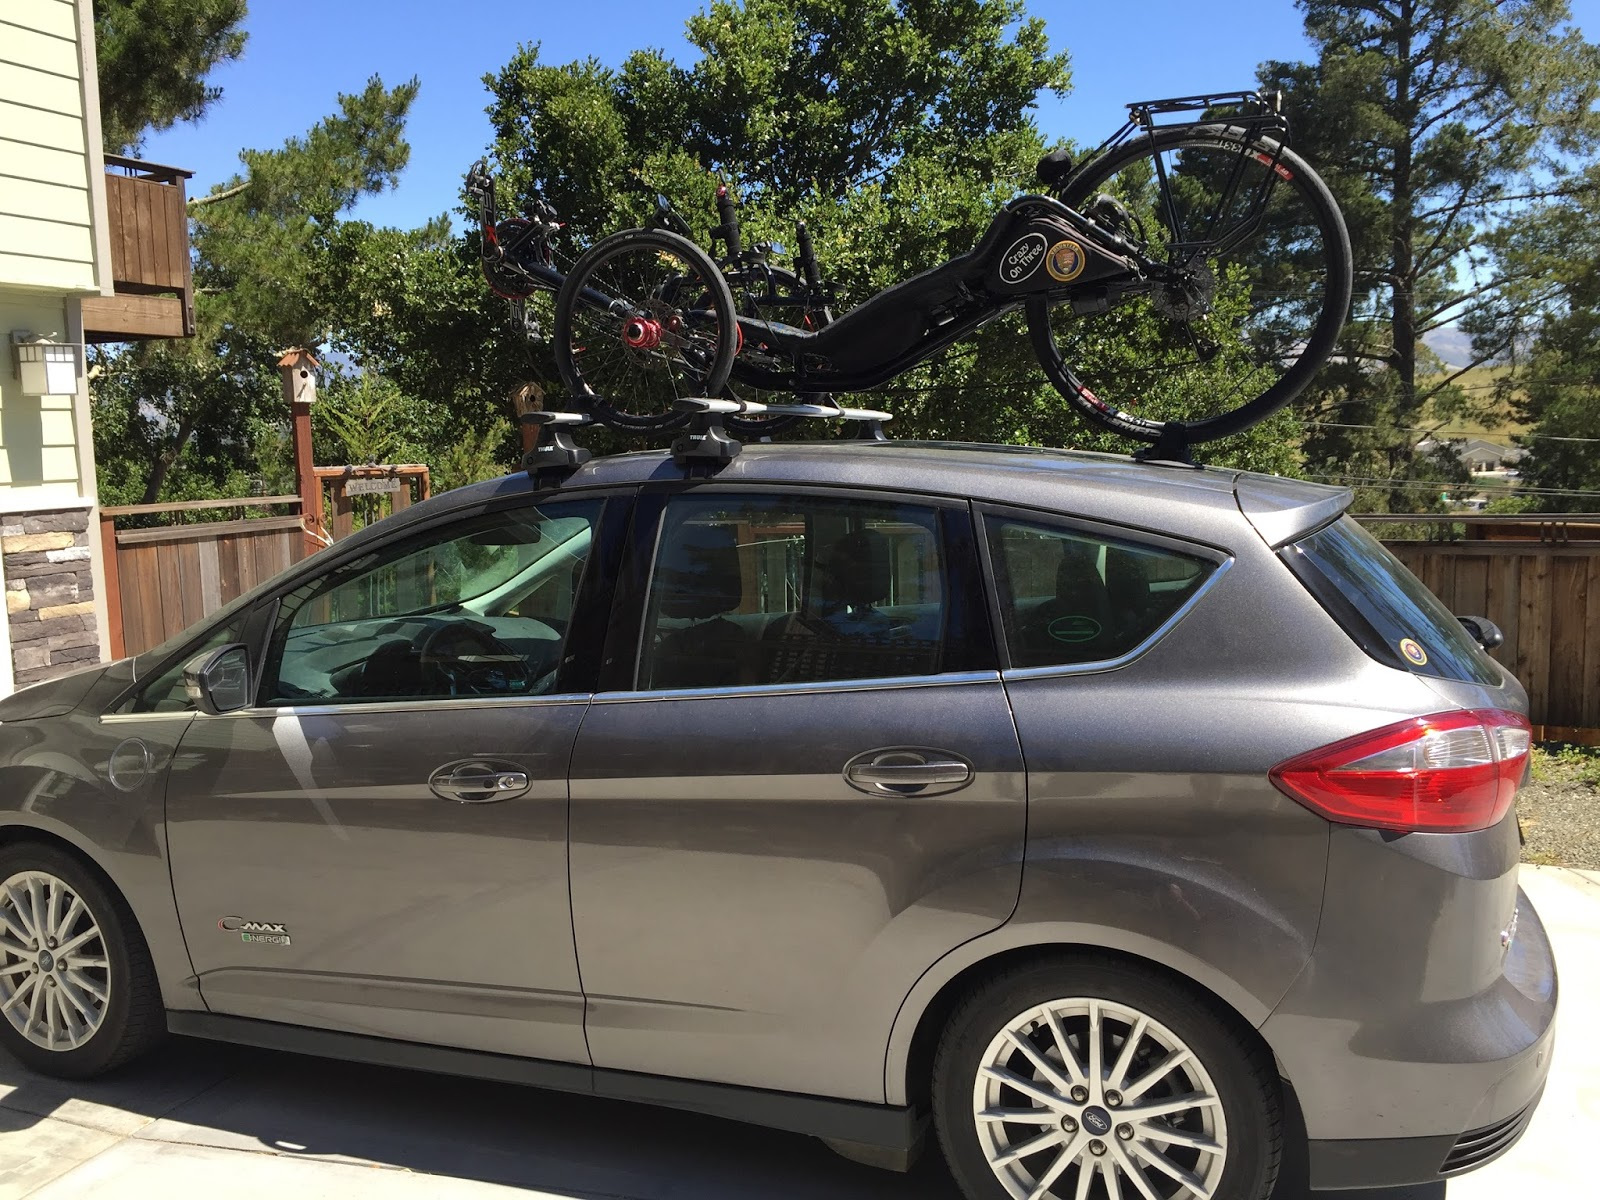 The Flush Mount Thule Roof Rack Is Installed So My Front Tires Fit Nicely  In Between The Racks. A SeaSucker Suction Cup Holds The Rear Tire In Place.